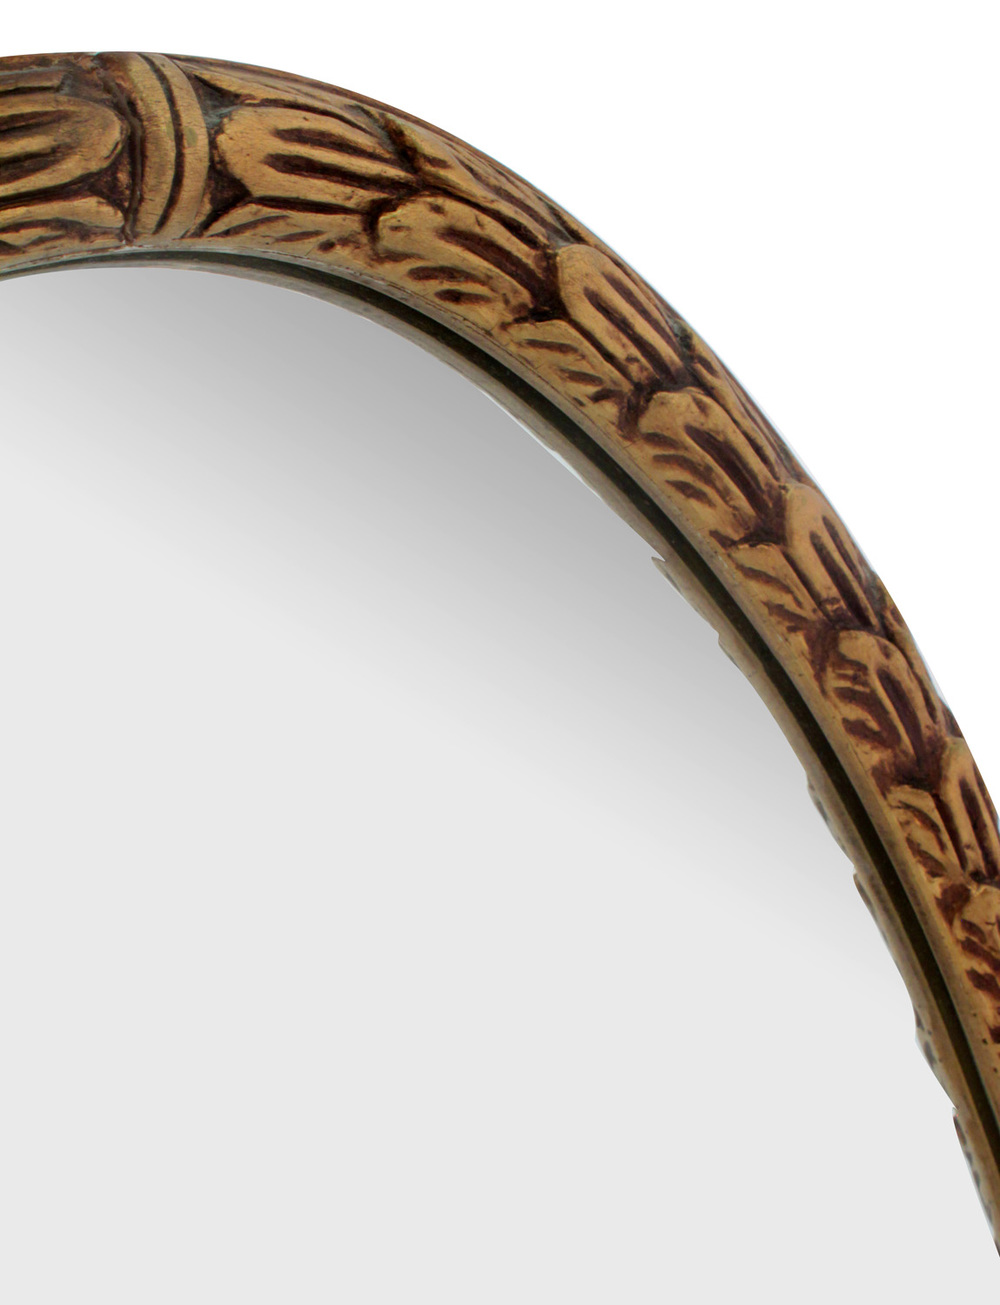 50s 38 carved gilded oval mirror178 detail1 hires.jpg